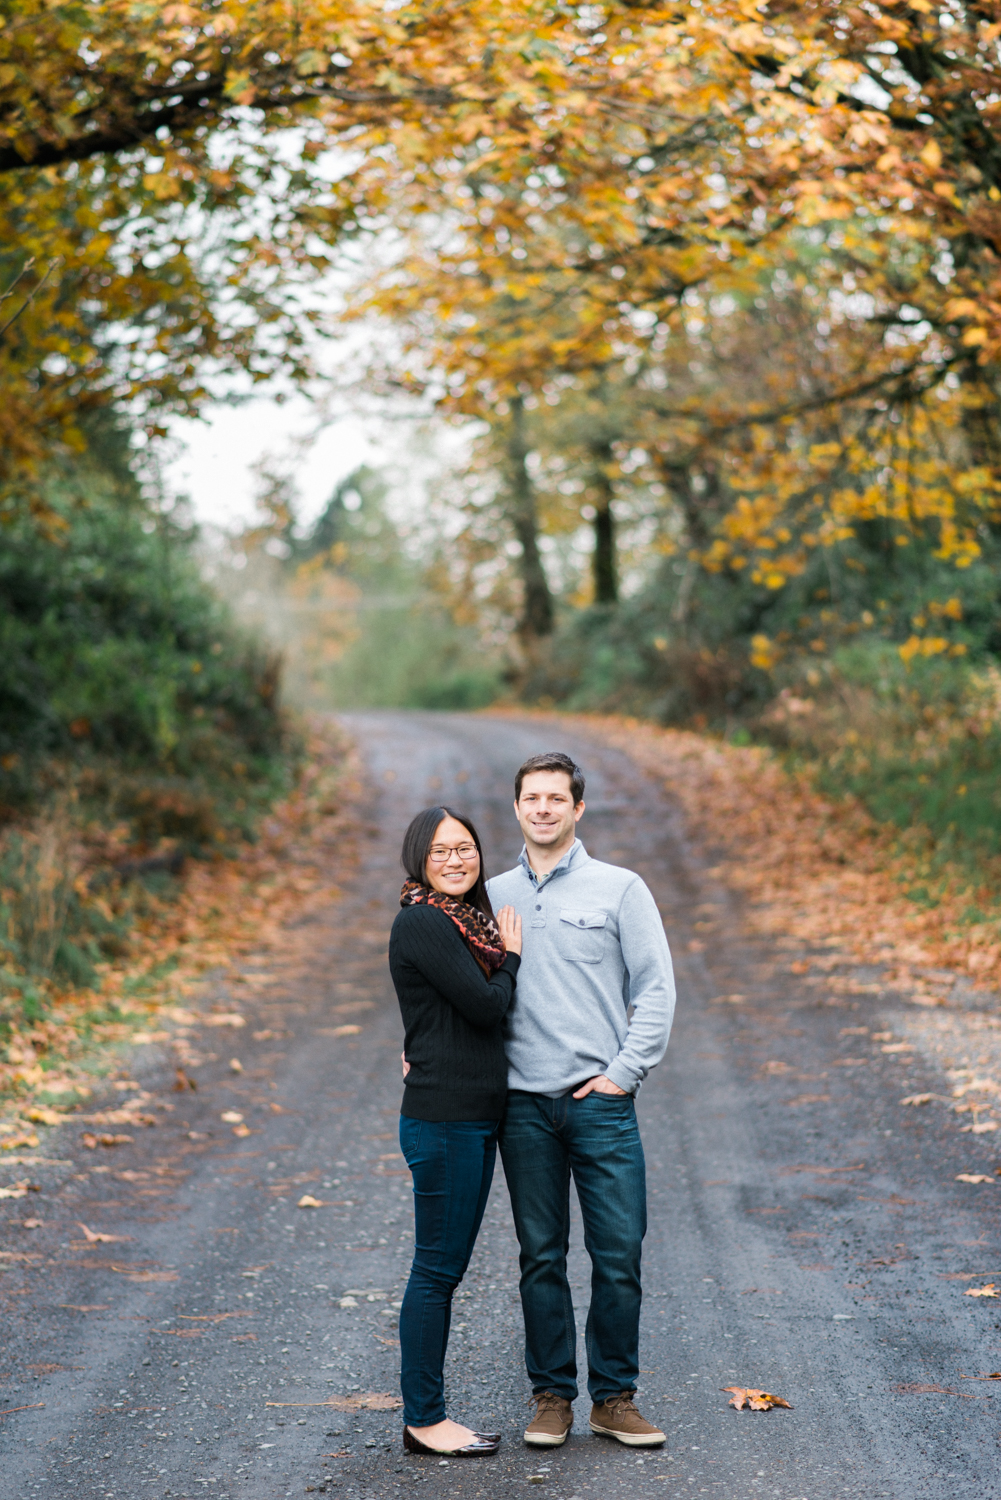 portland-engagement-columbia-river-gorge-latourell-waterfall-autumn-fall-crown-point-shelley-marie-photo-16.jpg